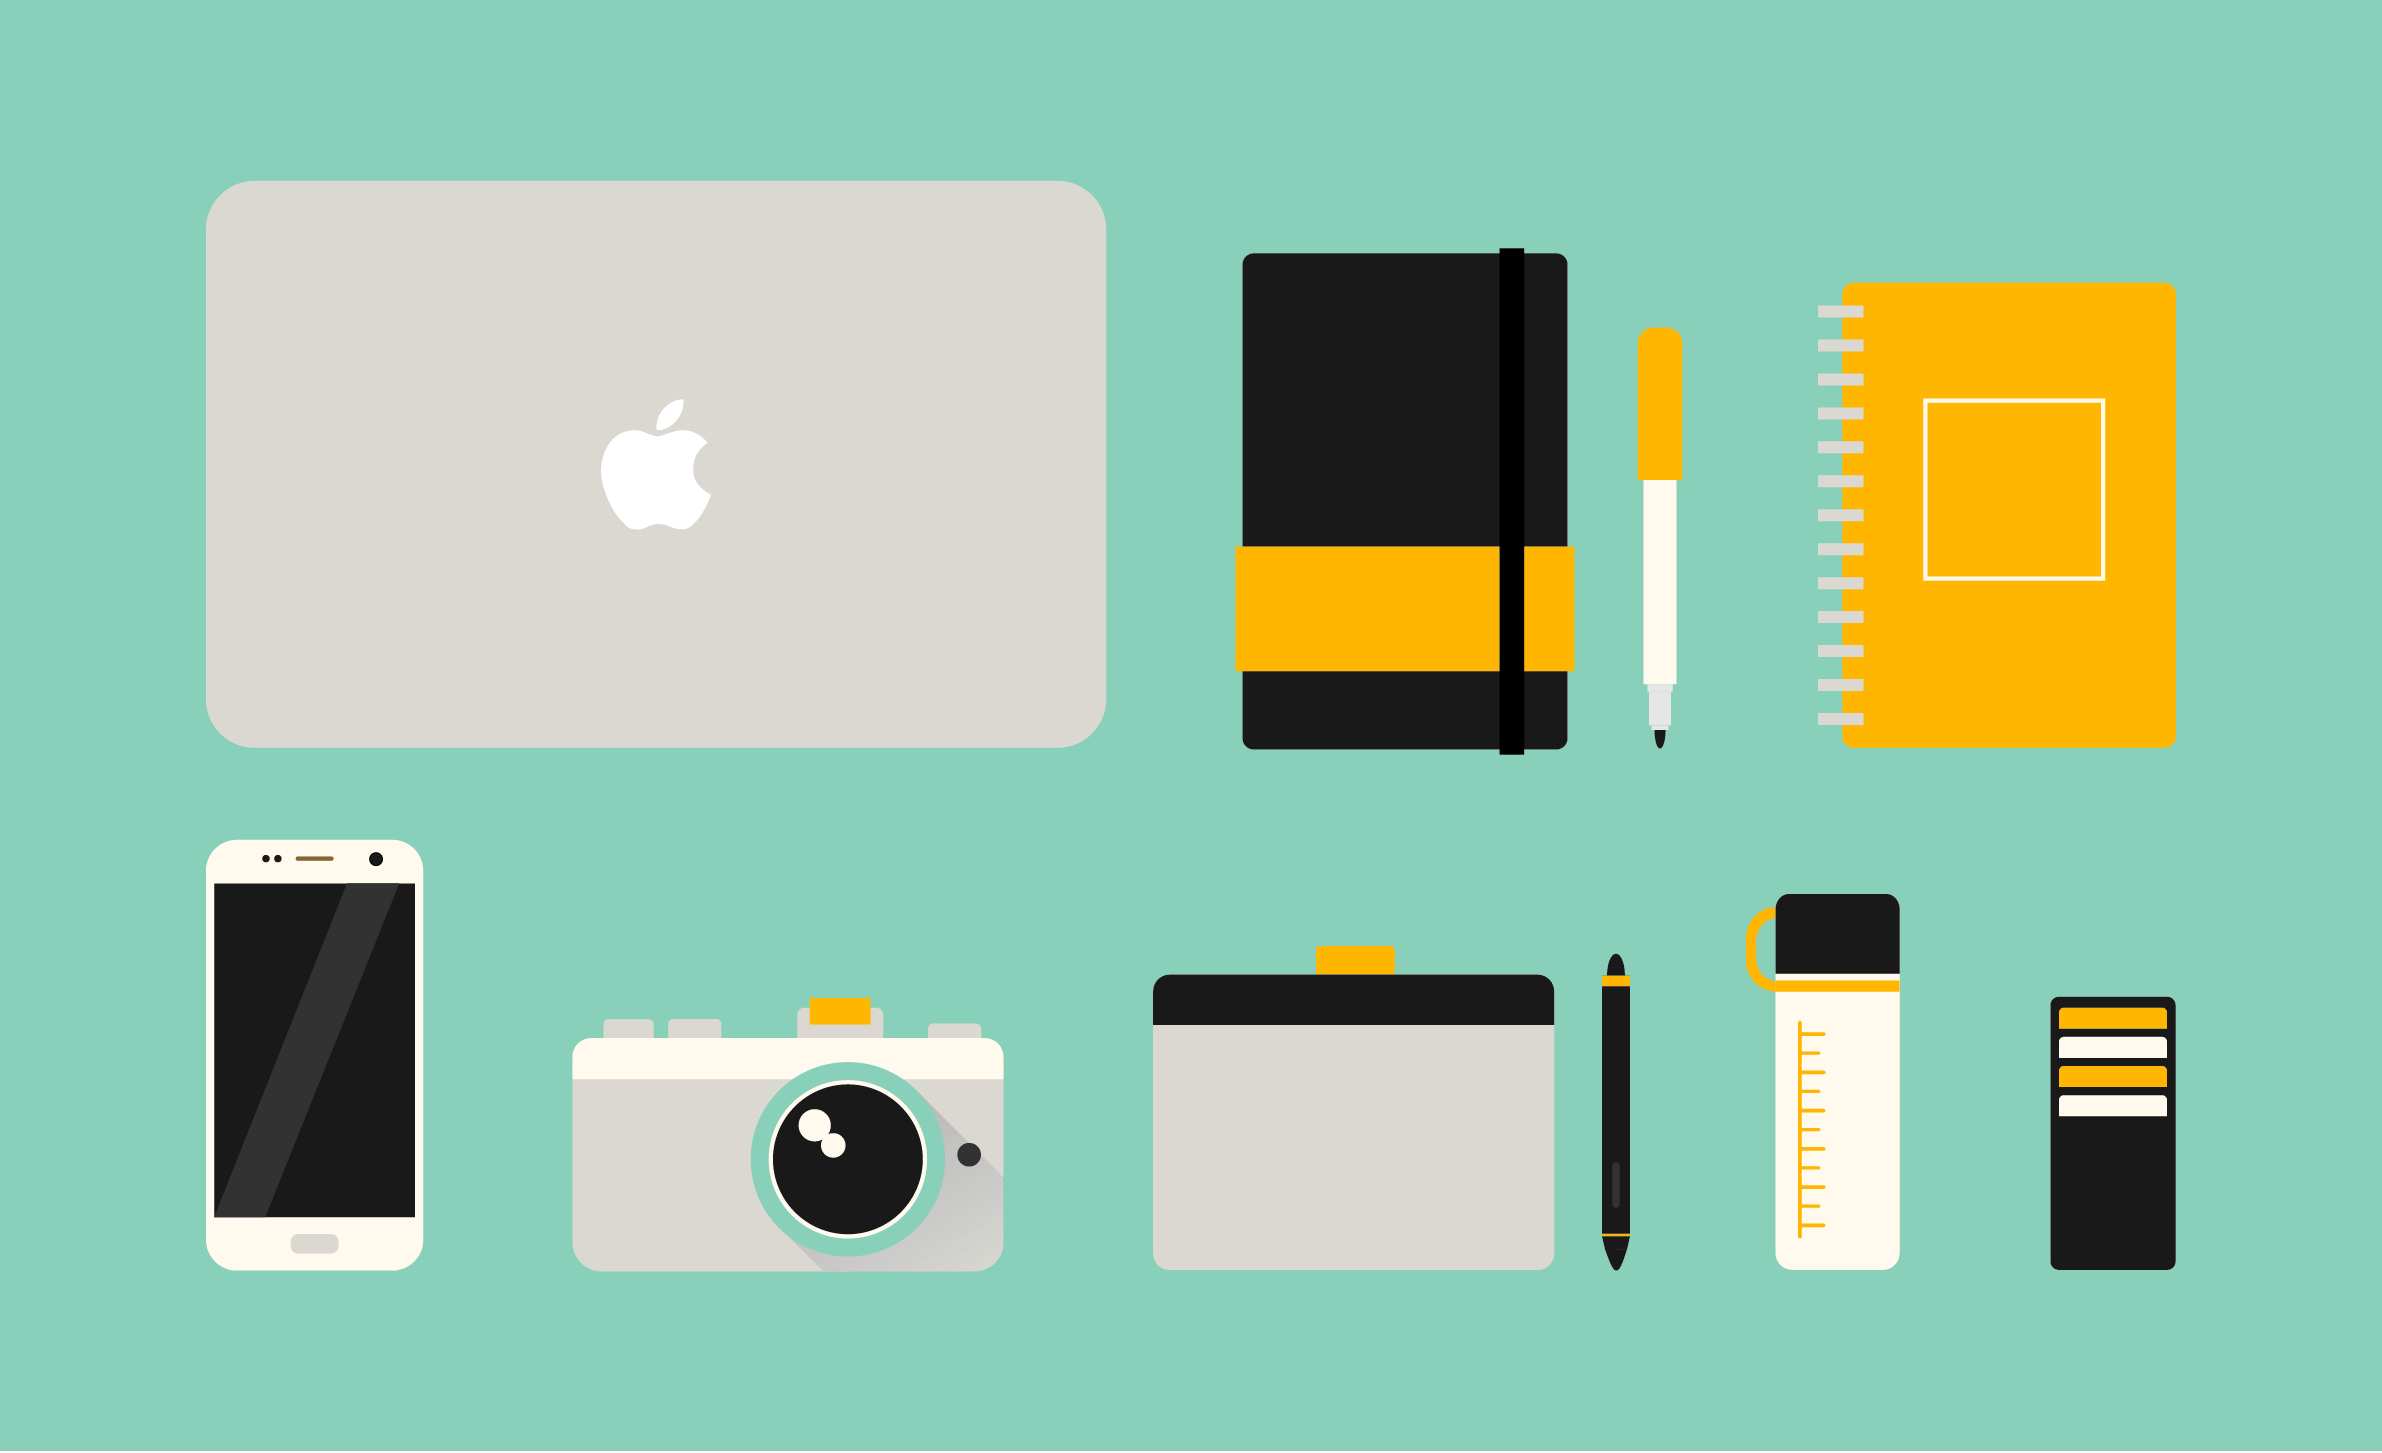 whats-in-my-bag-01.png